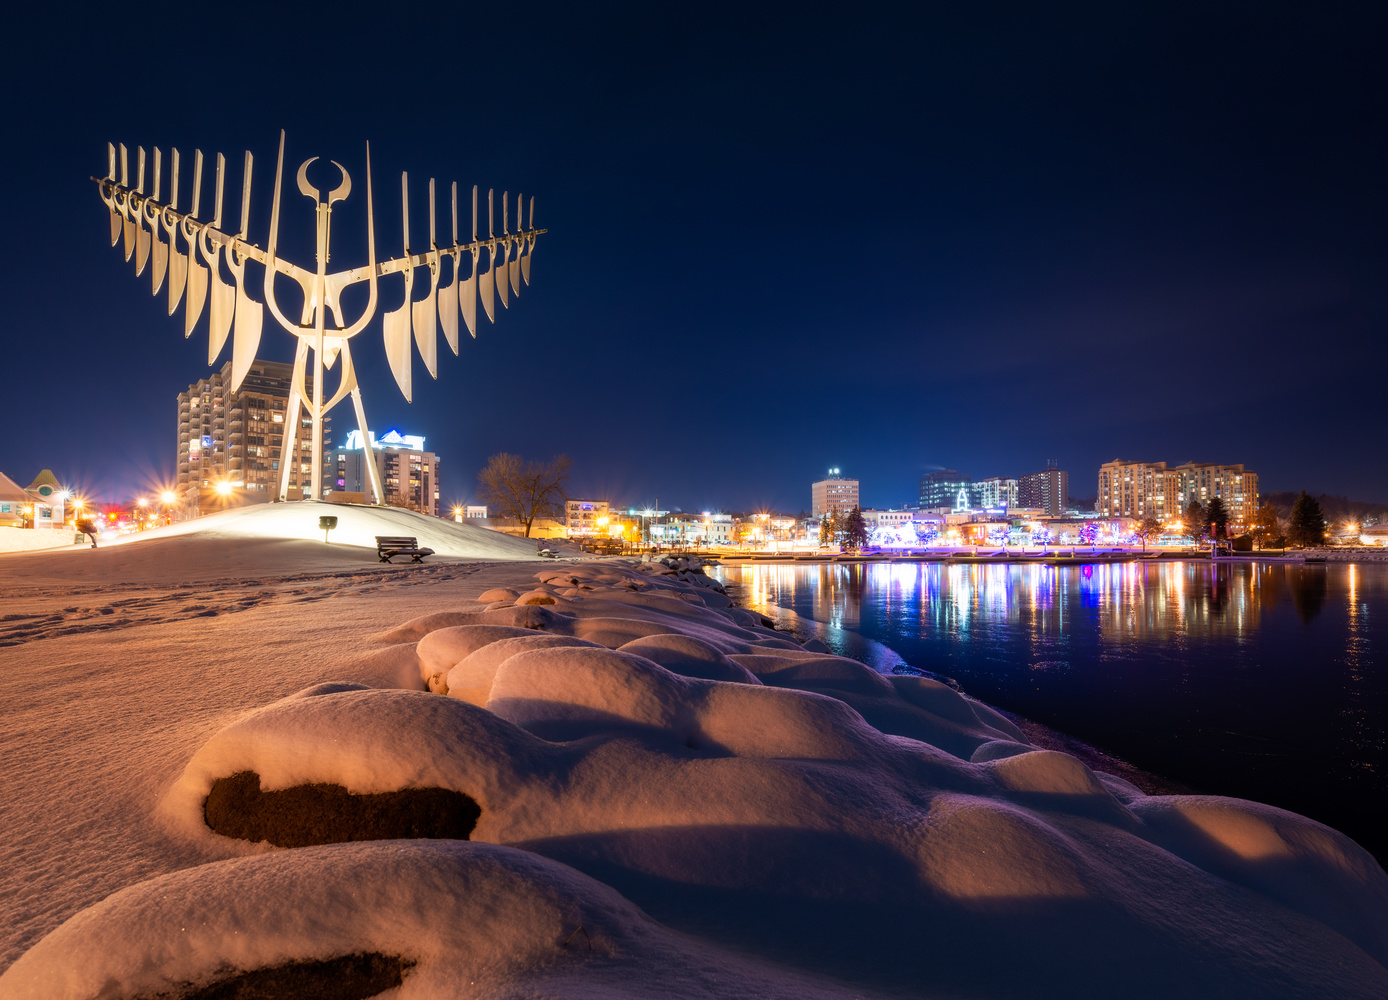 The City's Winter Spirit by Will Dunn